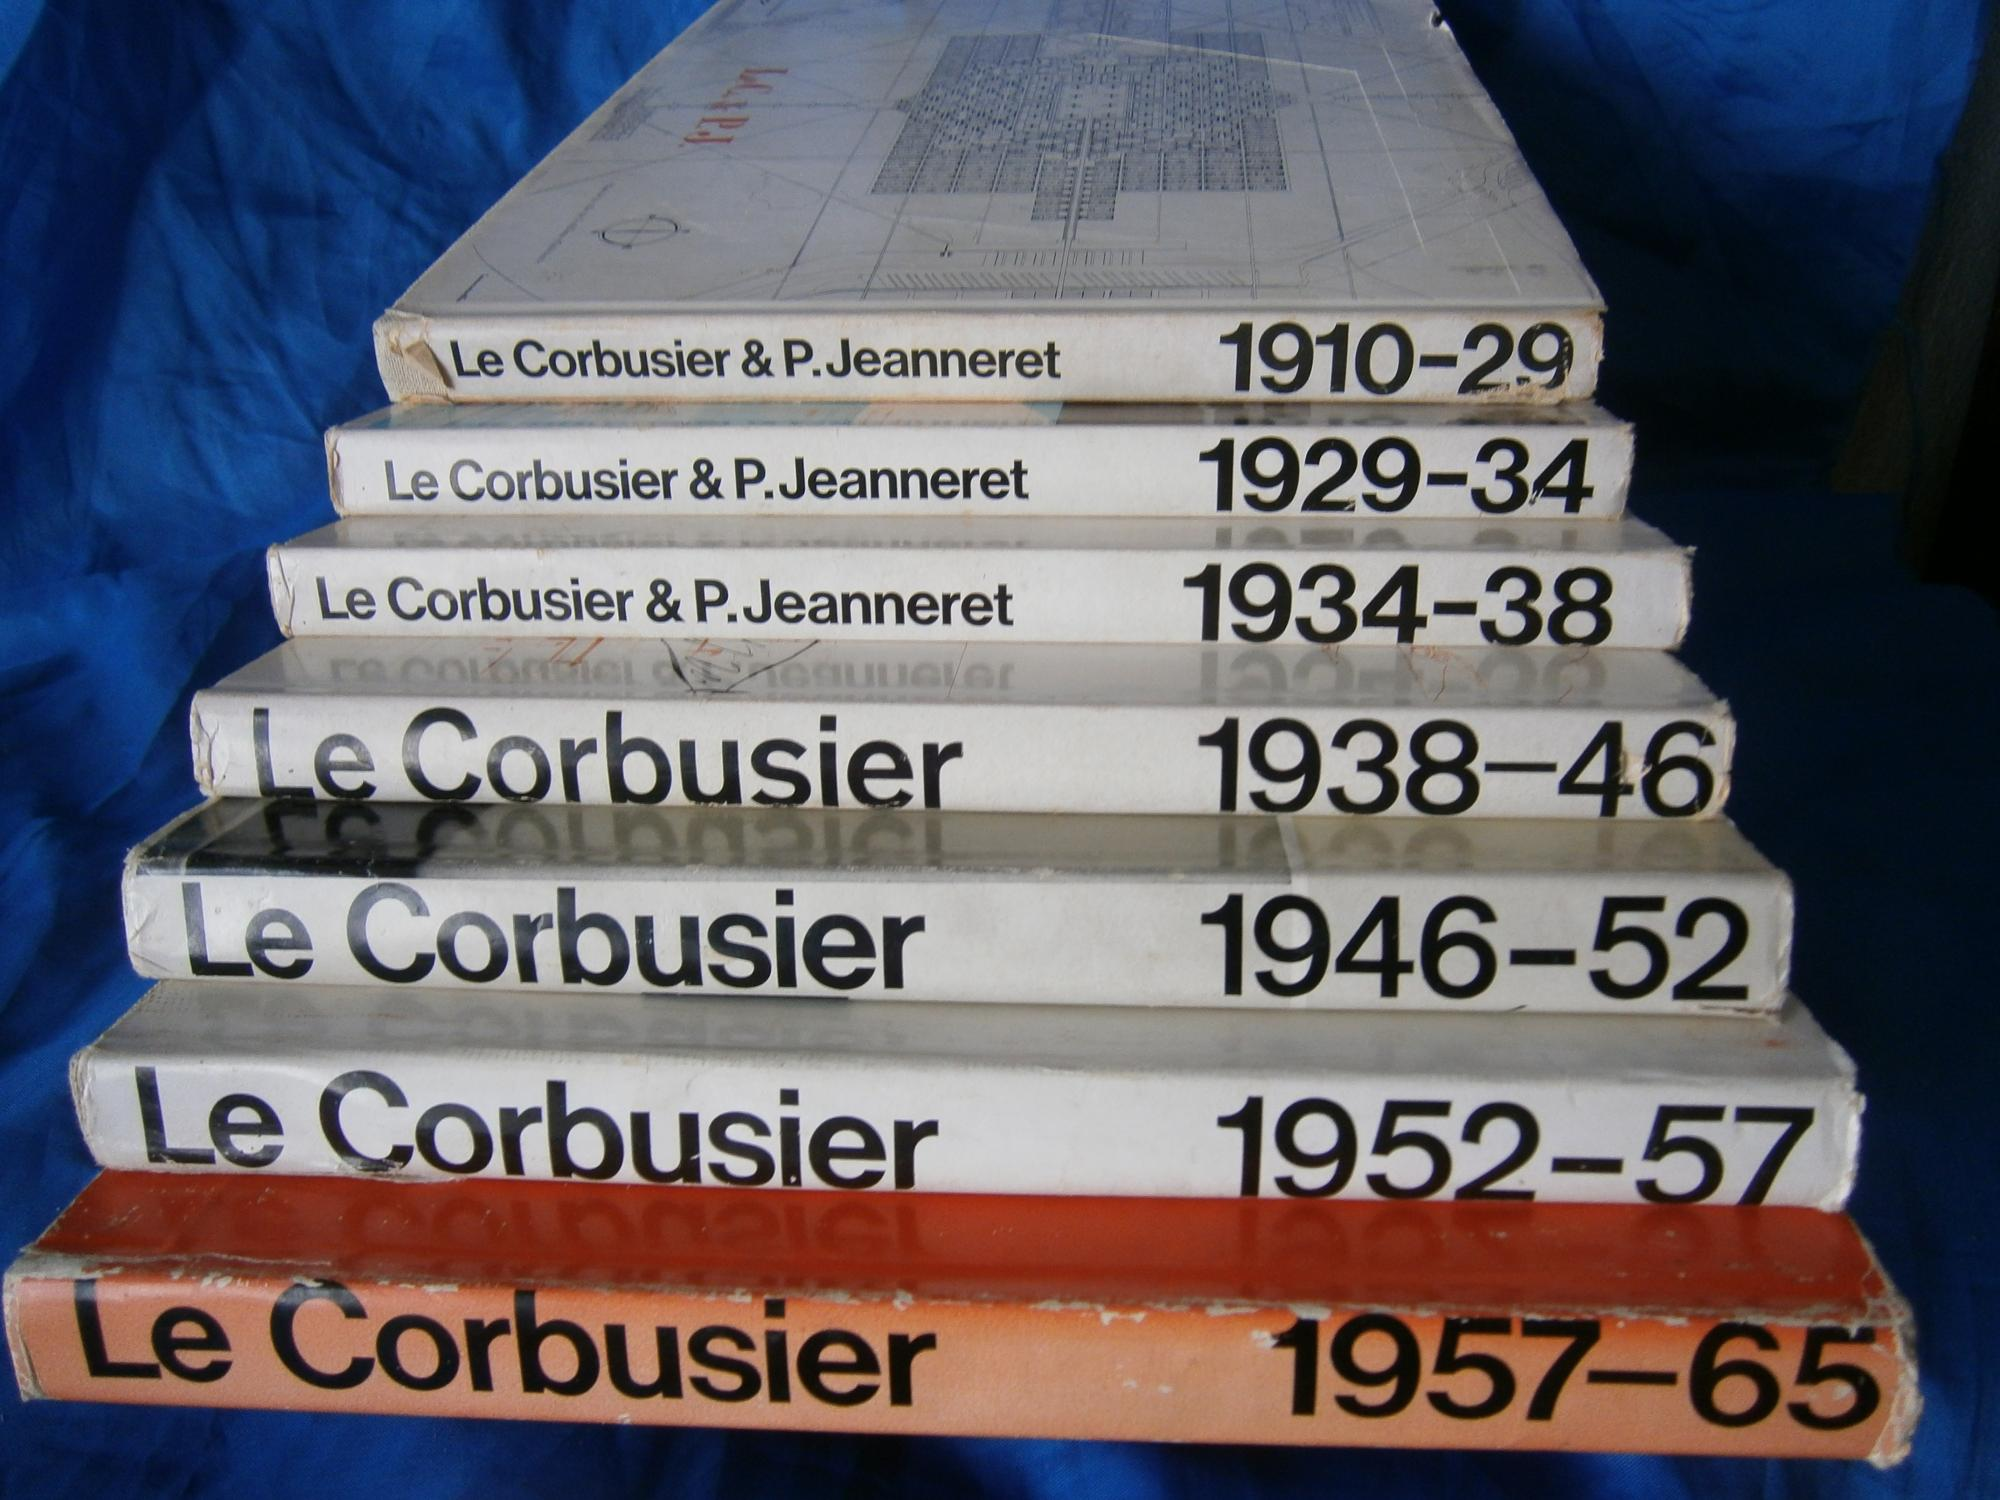 le corbusier oeuvre complete oeuvres completes. Black Bedroom Furniture Sets. Home Design Ideas